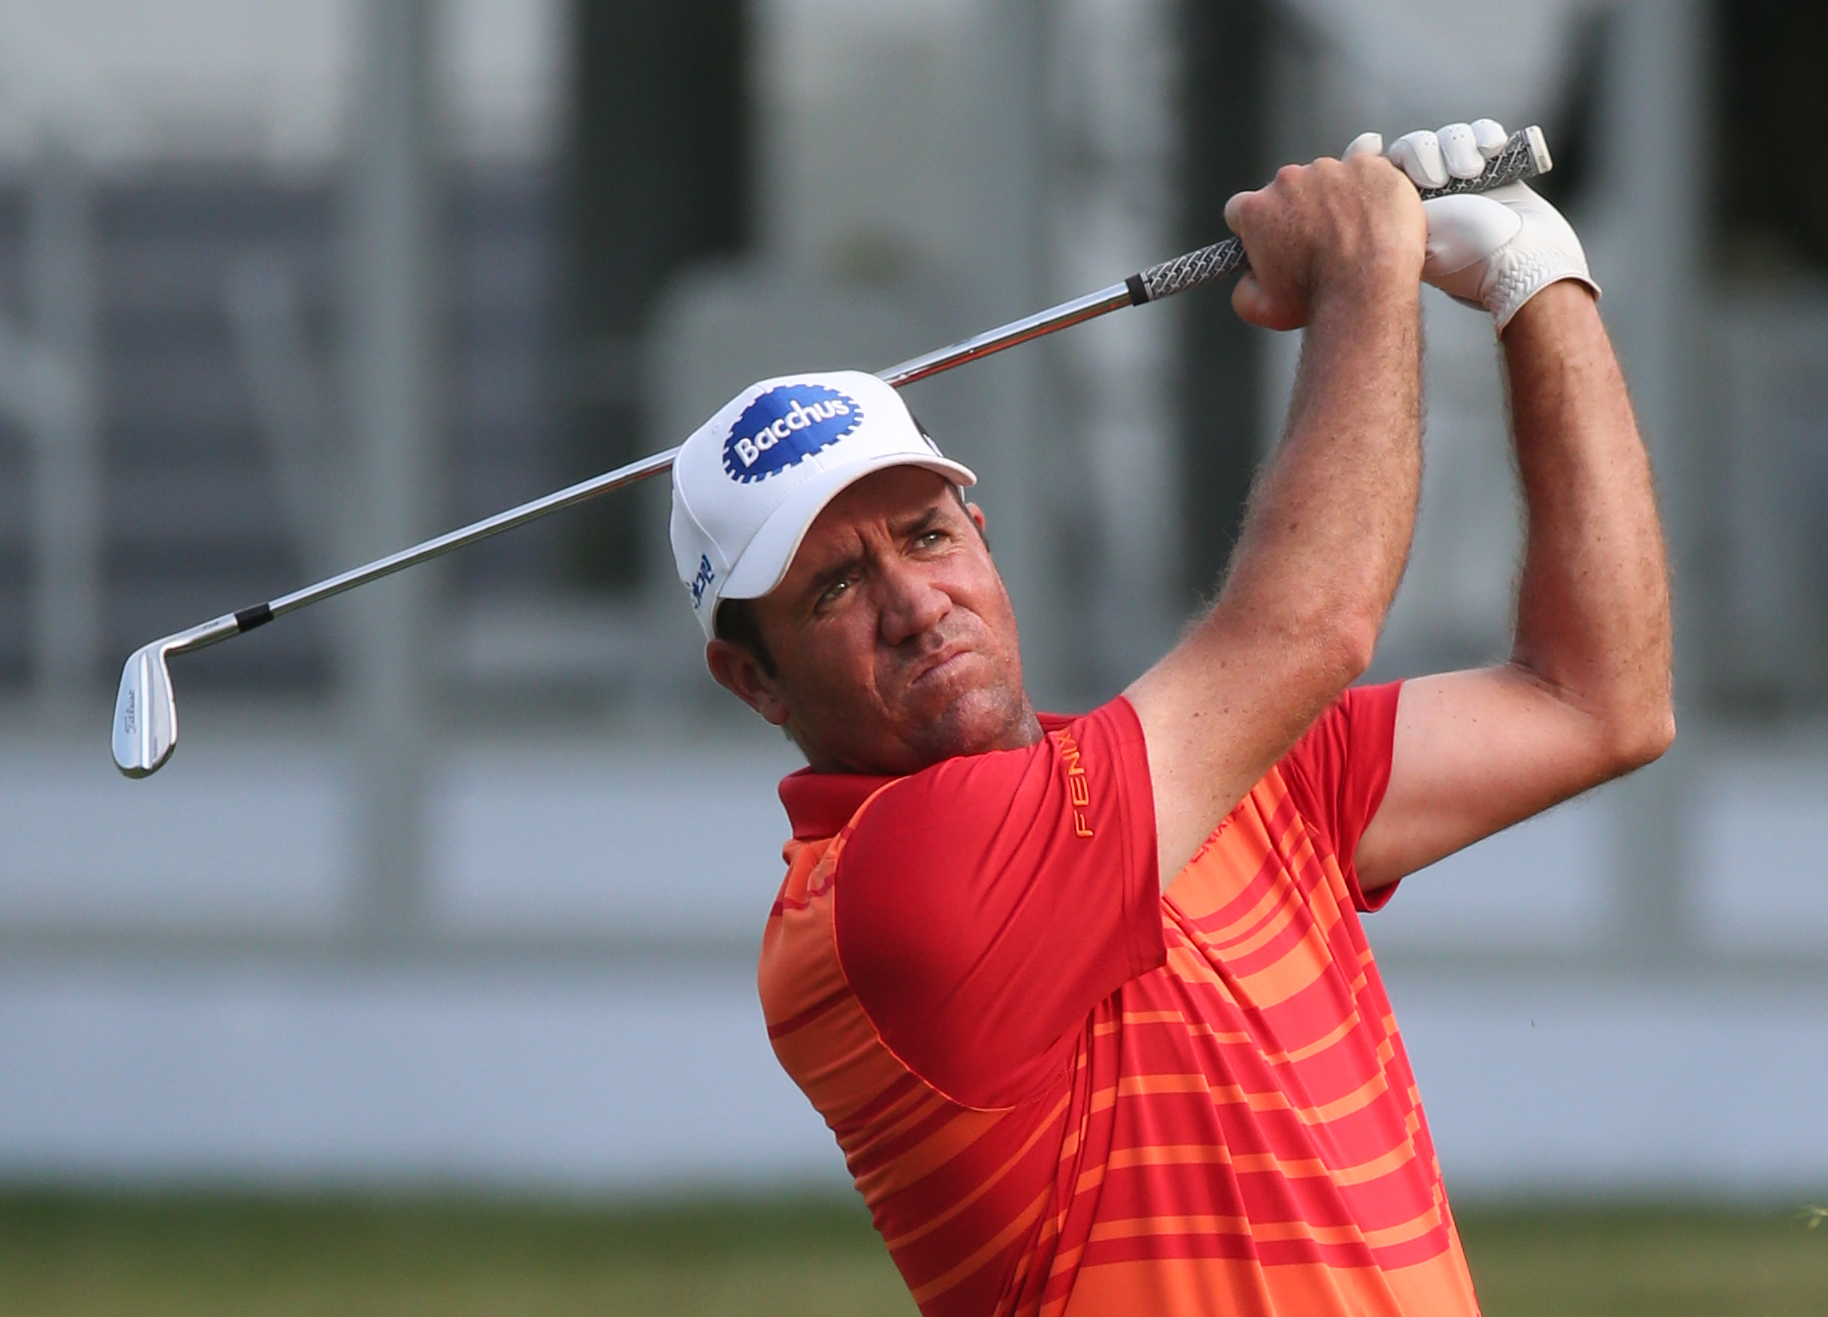 Scott Hend of Australia hits a shot from the fairway on the 17th hole during round 2 at the Hong Kong Open golf tournament in Hong Kong Friday, Oct. 23, 2015. (AP Photo/Kin Cheung)